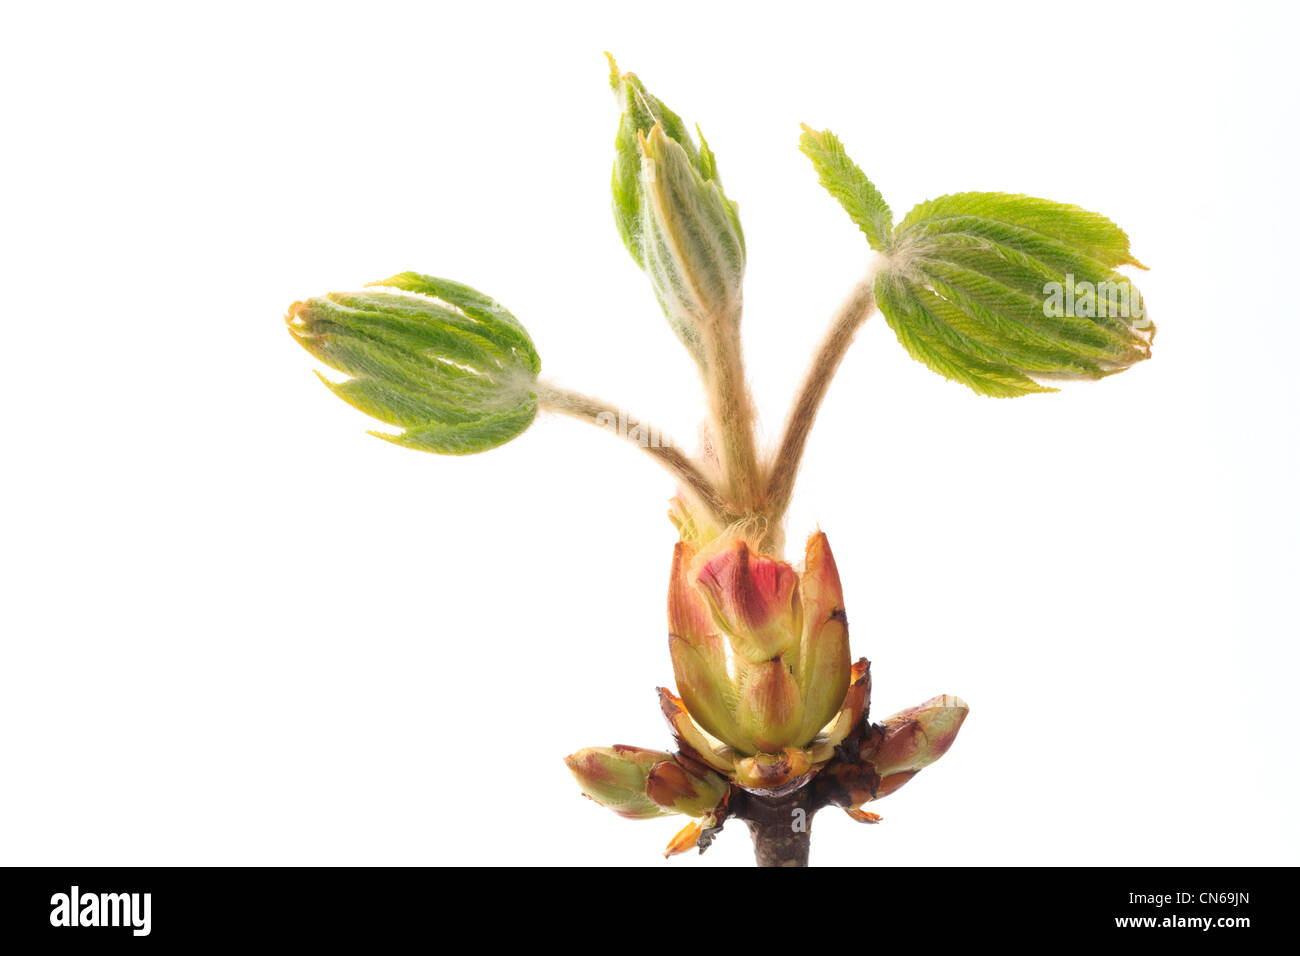 New shoot of Aesculus hippocastanum commonly known as Horse-chestnut or Conker tree. - Stock Image